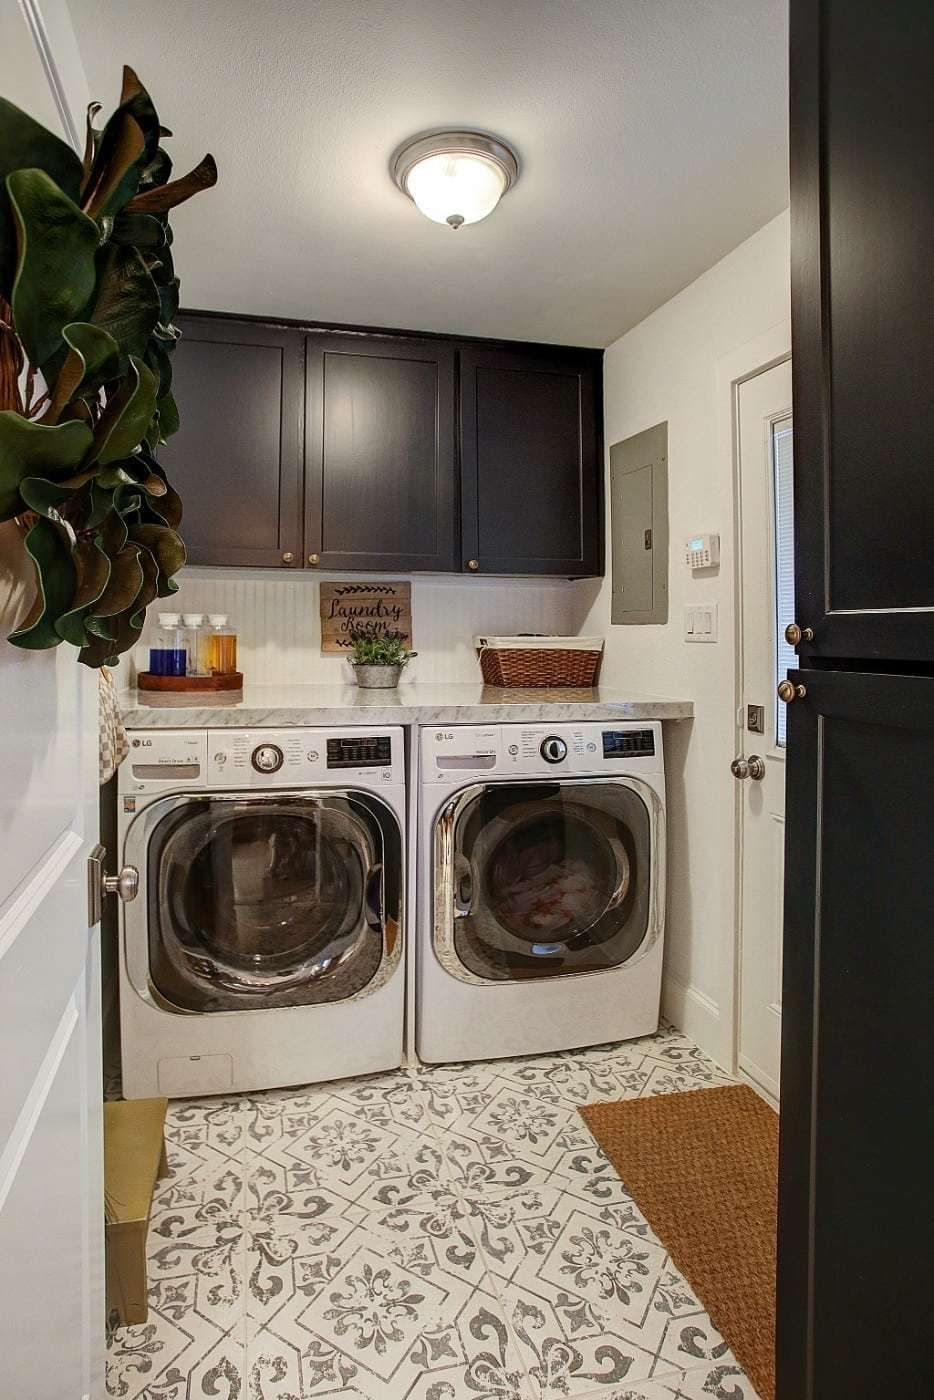 How to dress up your laundry room